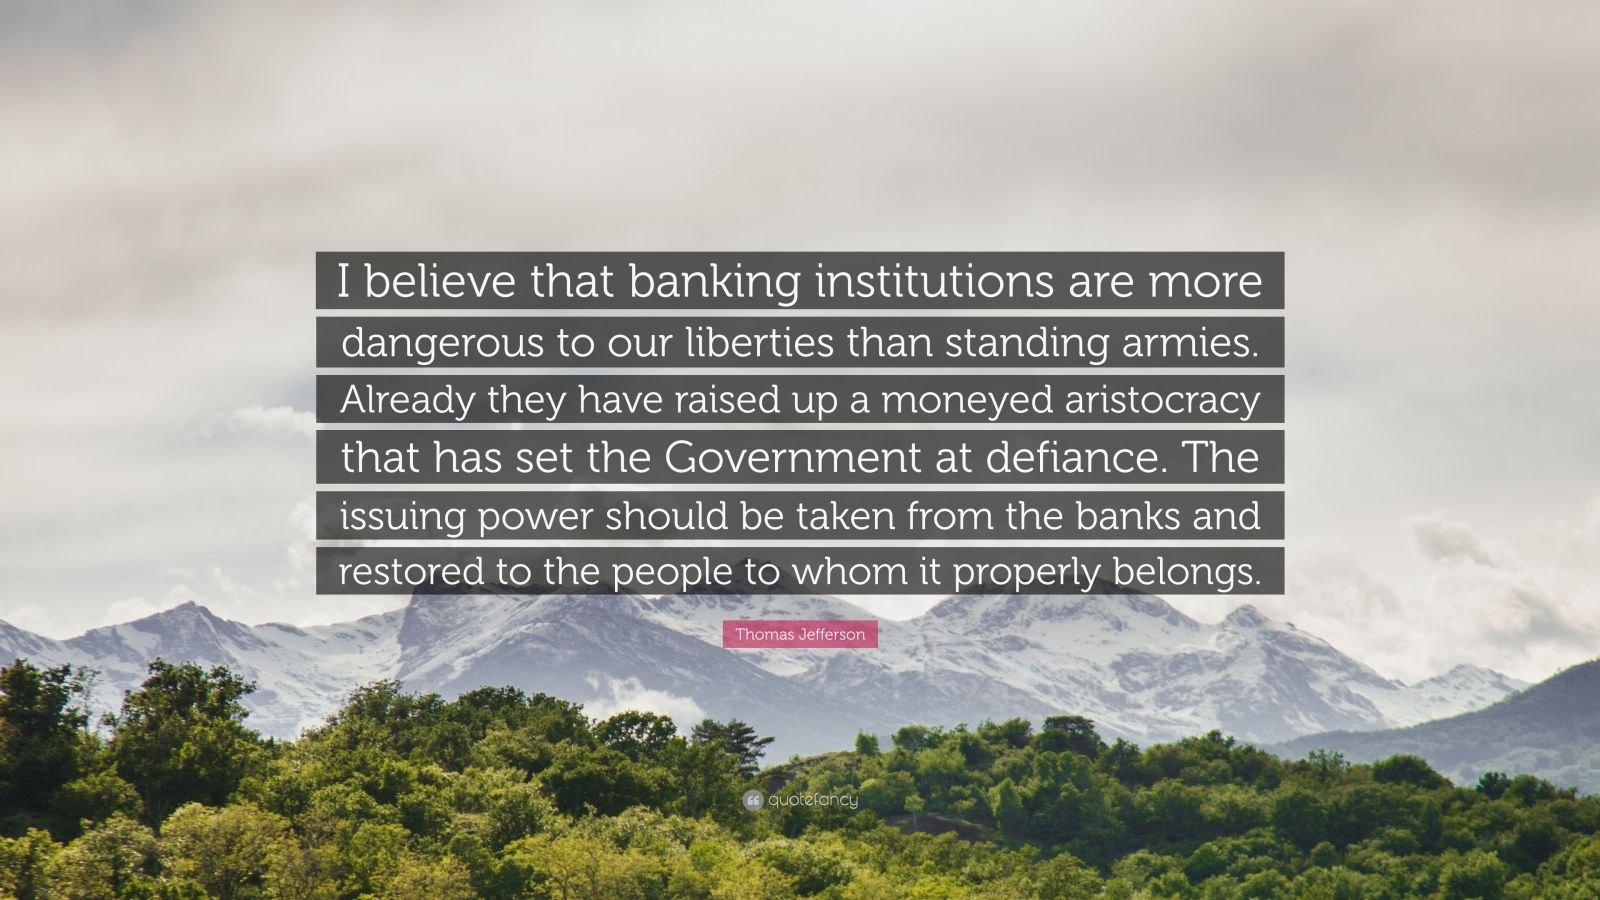 "Thomas Jefferson Quote: ""I believe that banking institutions are more dangerous to our liberties than standing armies. Already they have raised up a moneyed aristocracy that has set the Government at defiance. The issuing power should be taken from the banks and restored to the people to whom it properly belongs."""